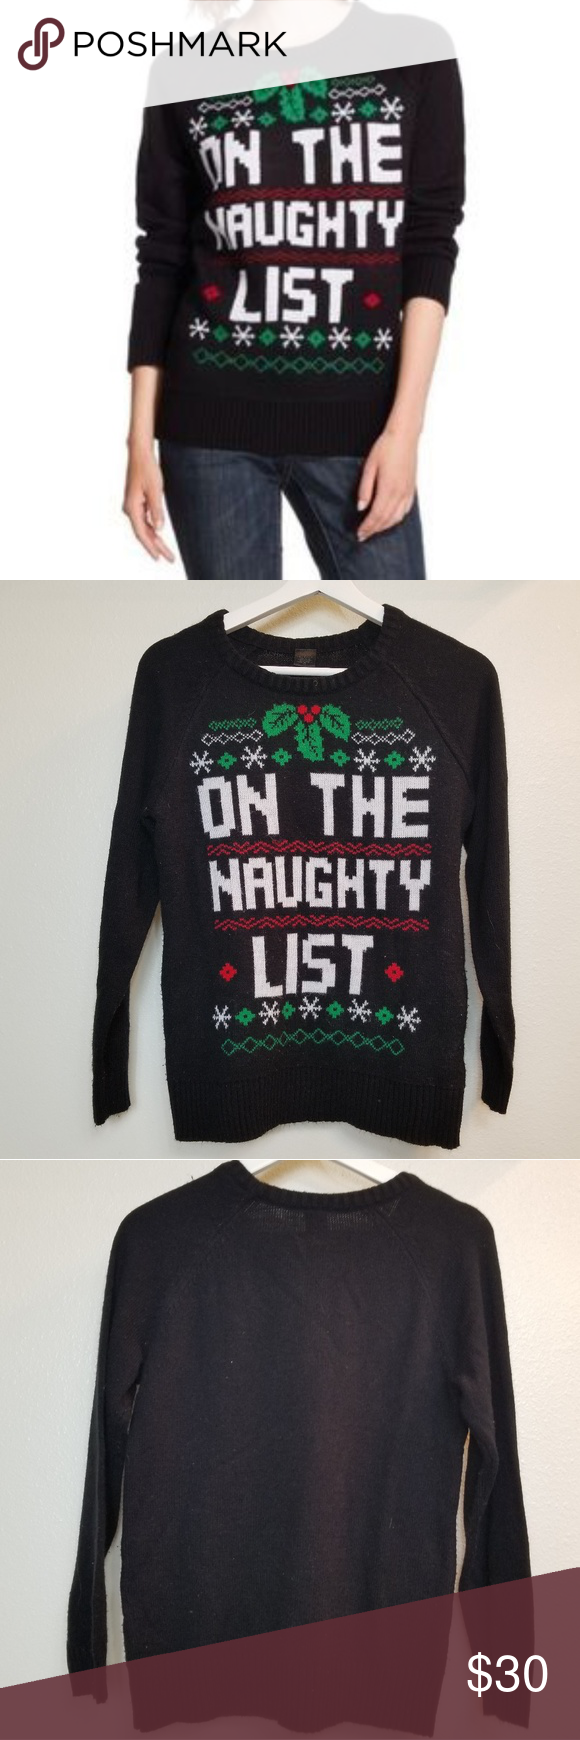 0b2ebe9b1dbc LOL Vintage Christmas Sweater On the naughty list!! Tag has been removed  but its 100% acrylic. In excellent condition. L.O.L. Vintage Sweaters